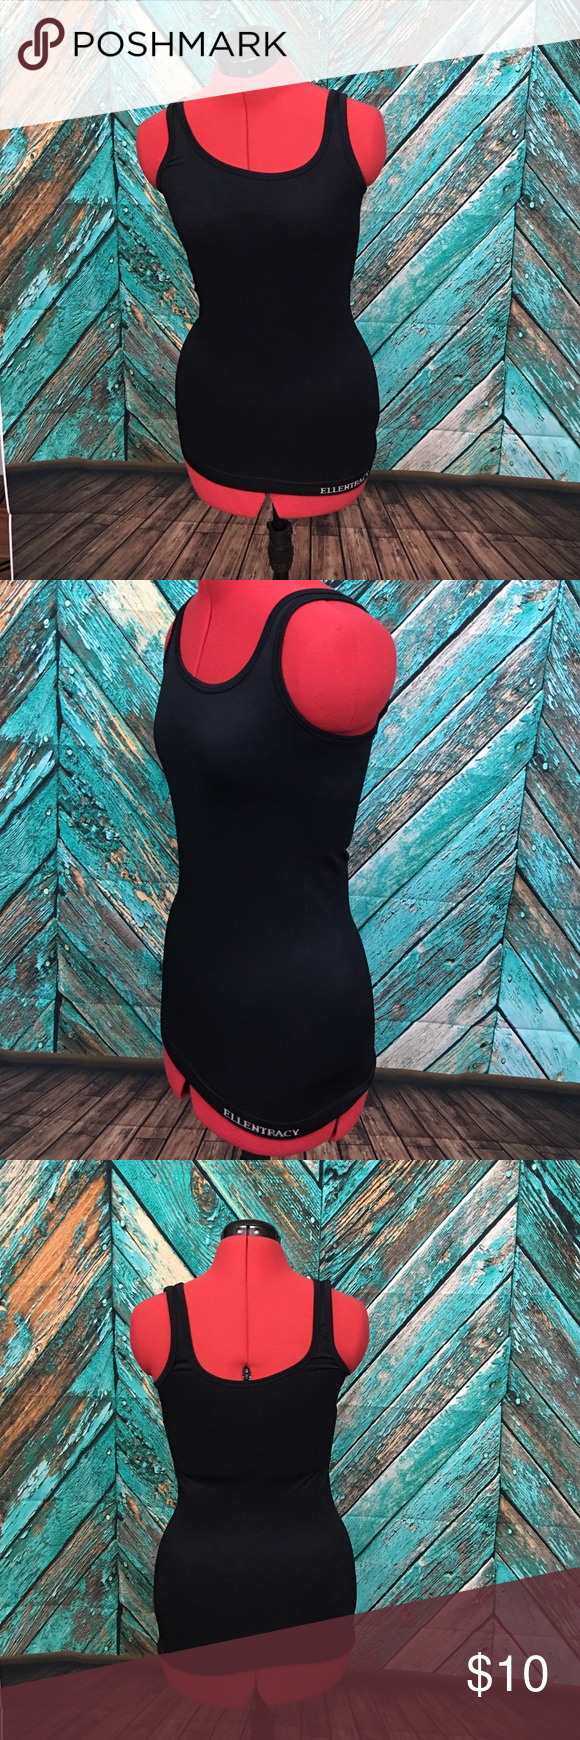 """Ellen Tracy Camisole EUC. Appx 22"""" shoulder to hem but it does stretch. Keeps you held in nicely. 😉. Color black. Size small. Ellen Tracy Intimates & Sleepwear"""